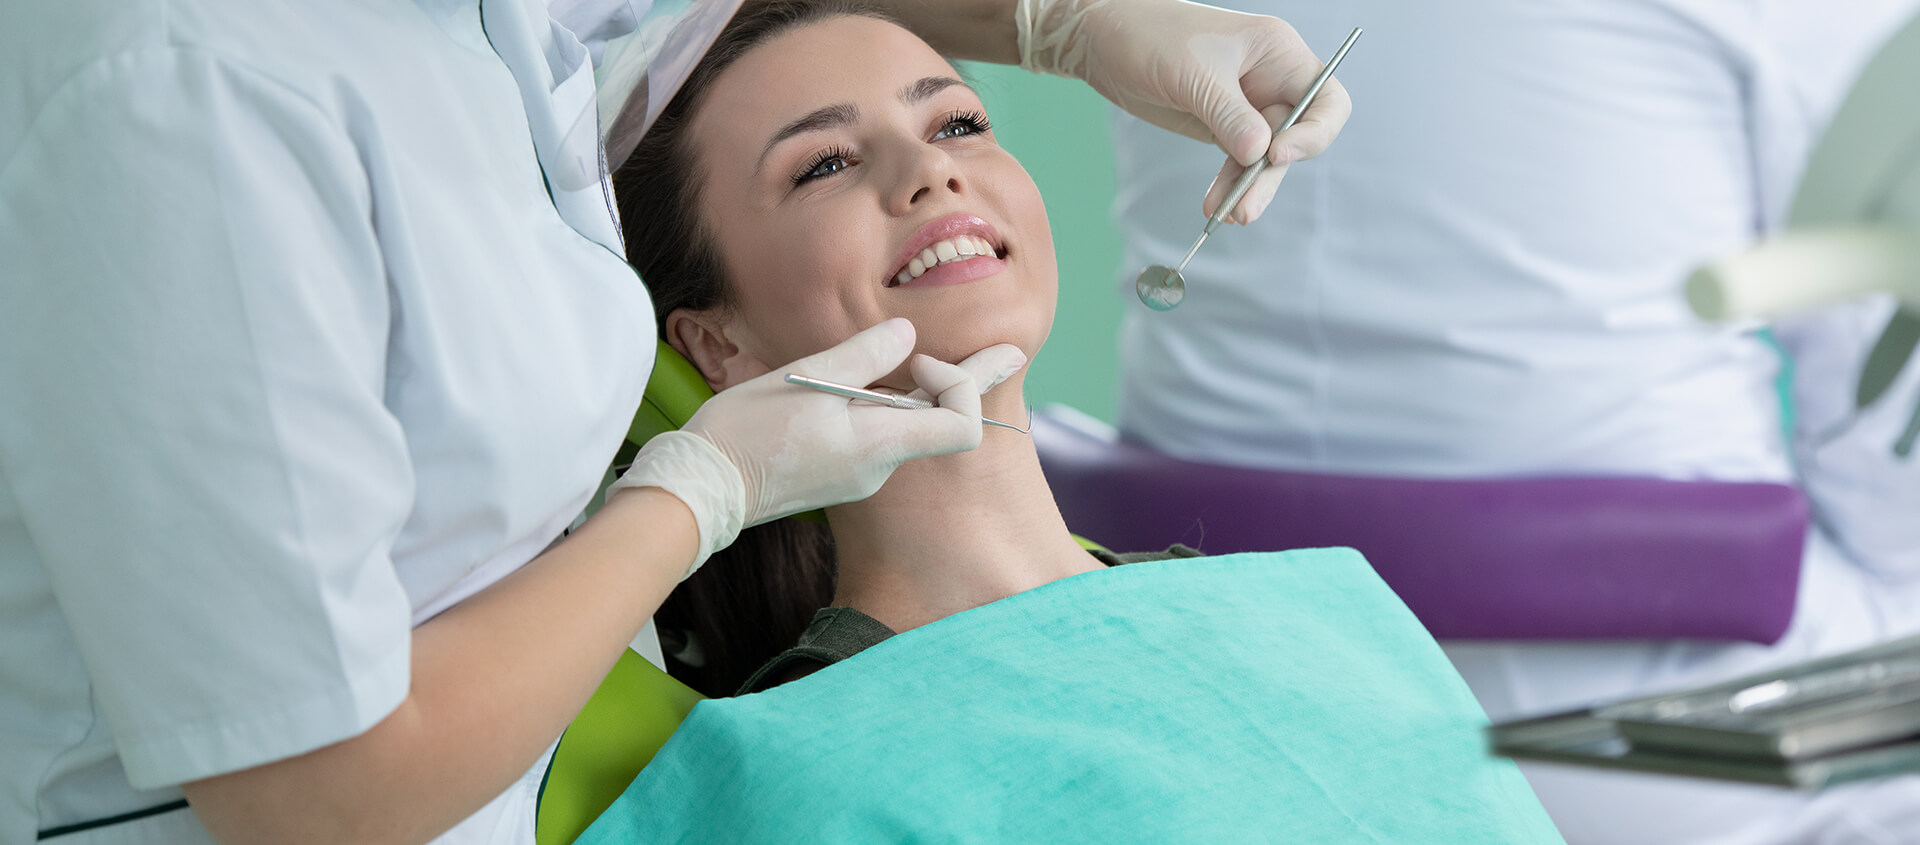 Do You Need Dental Oral Cancer Screening in Thibodaux Area?